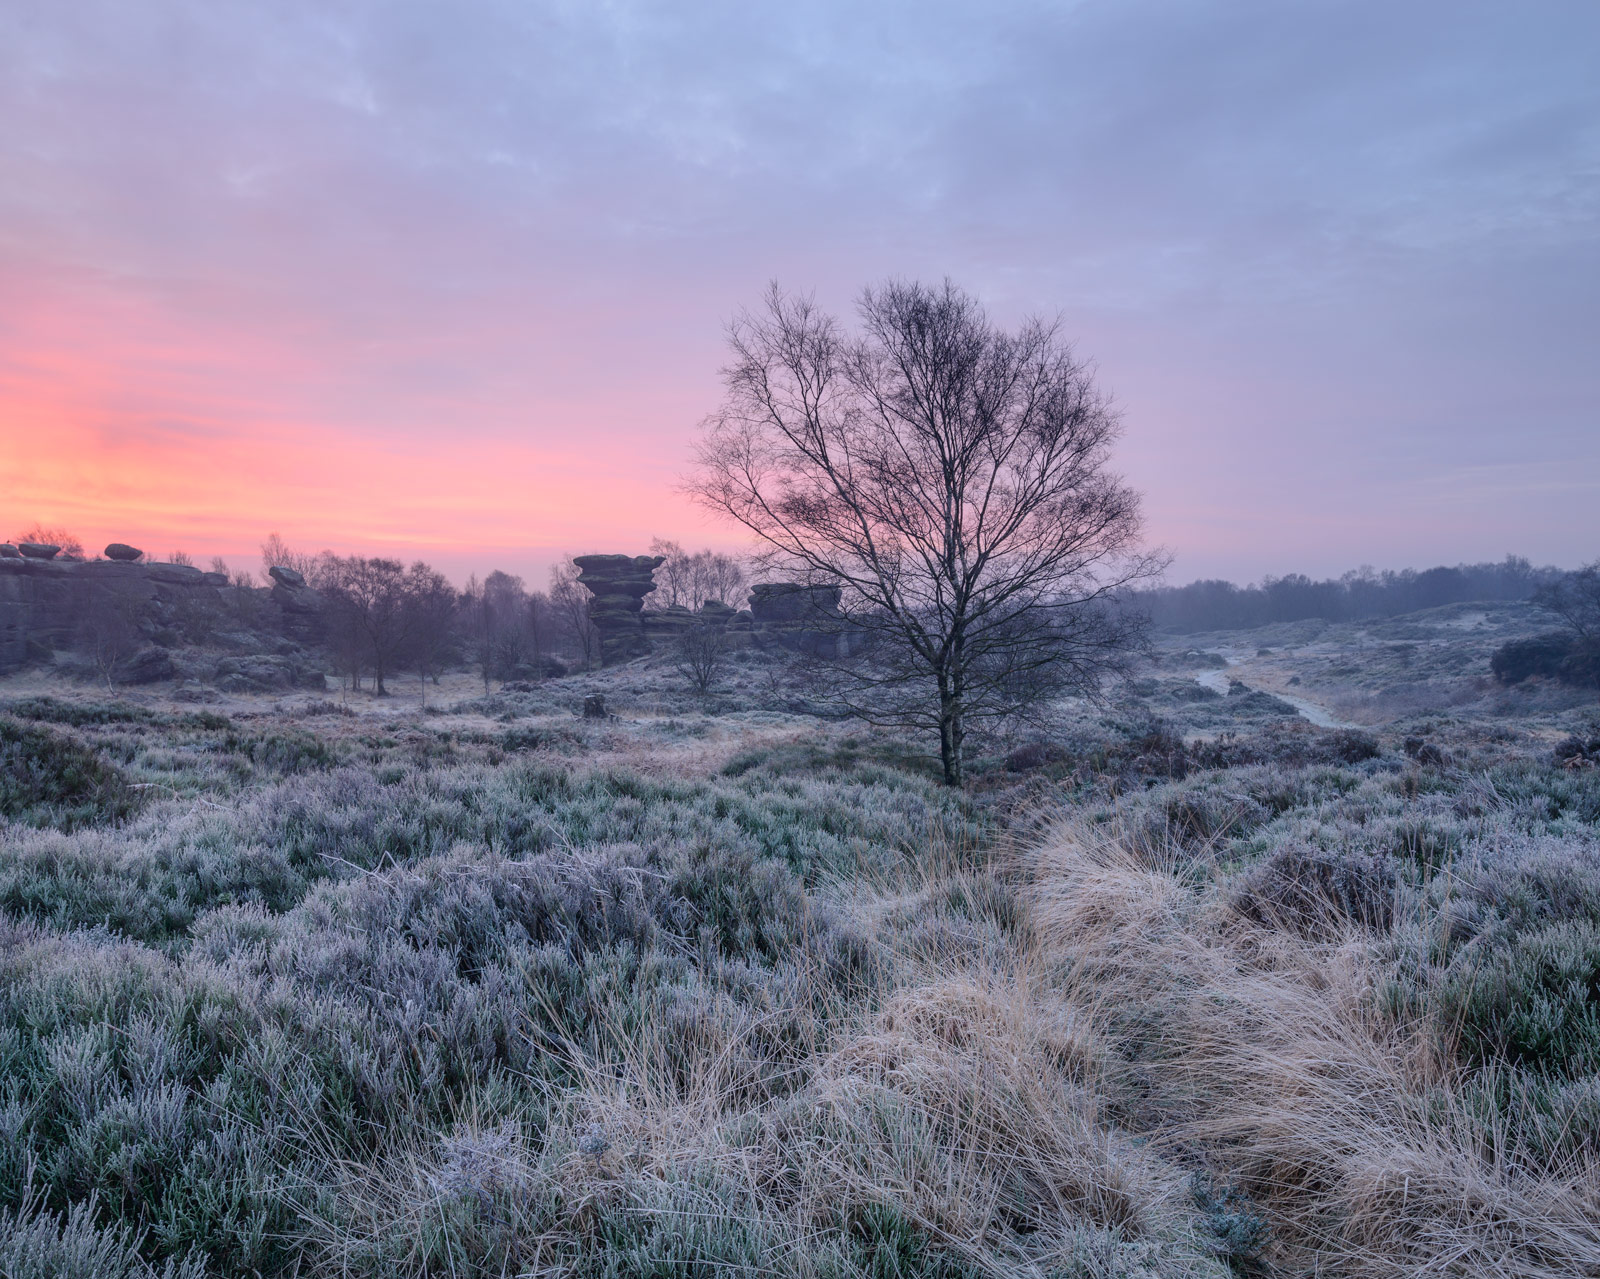 A frosty Brimham Moor, just before sunrise